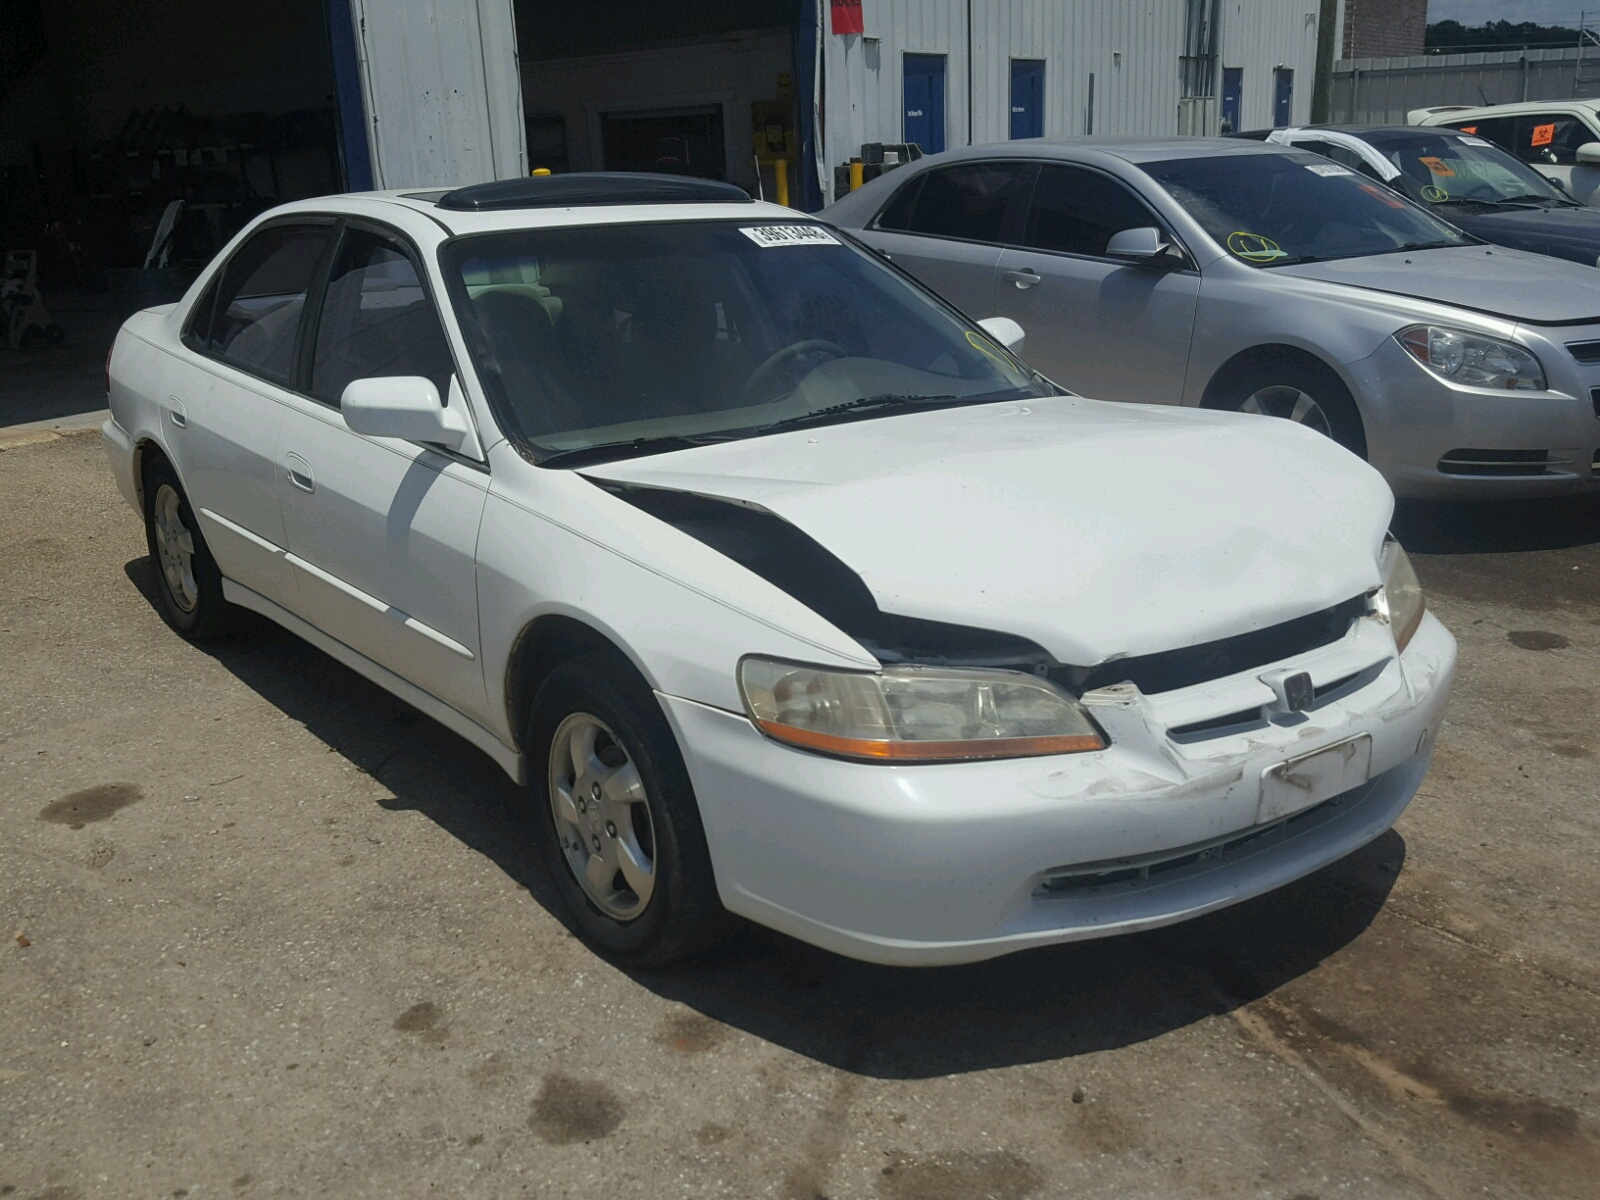 1998 Honda Accord EX for sale at Copart Montgomery AL Lot